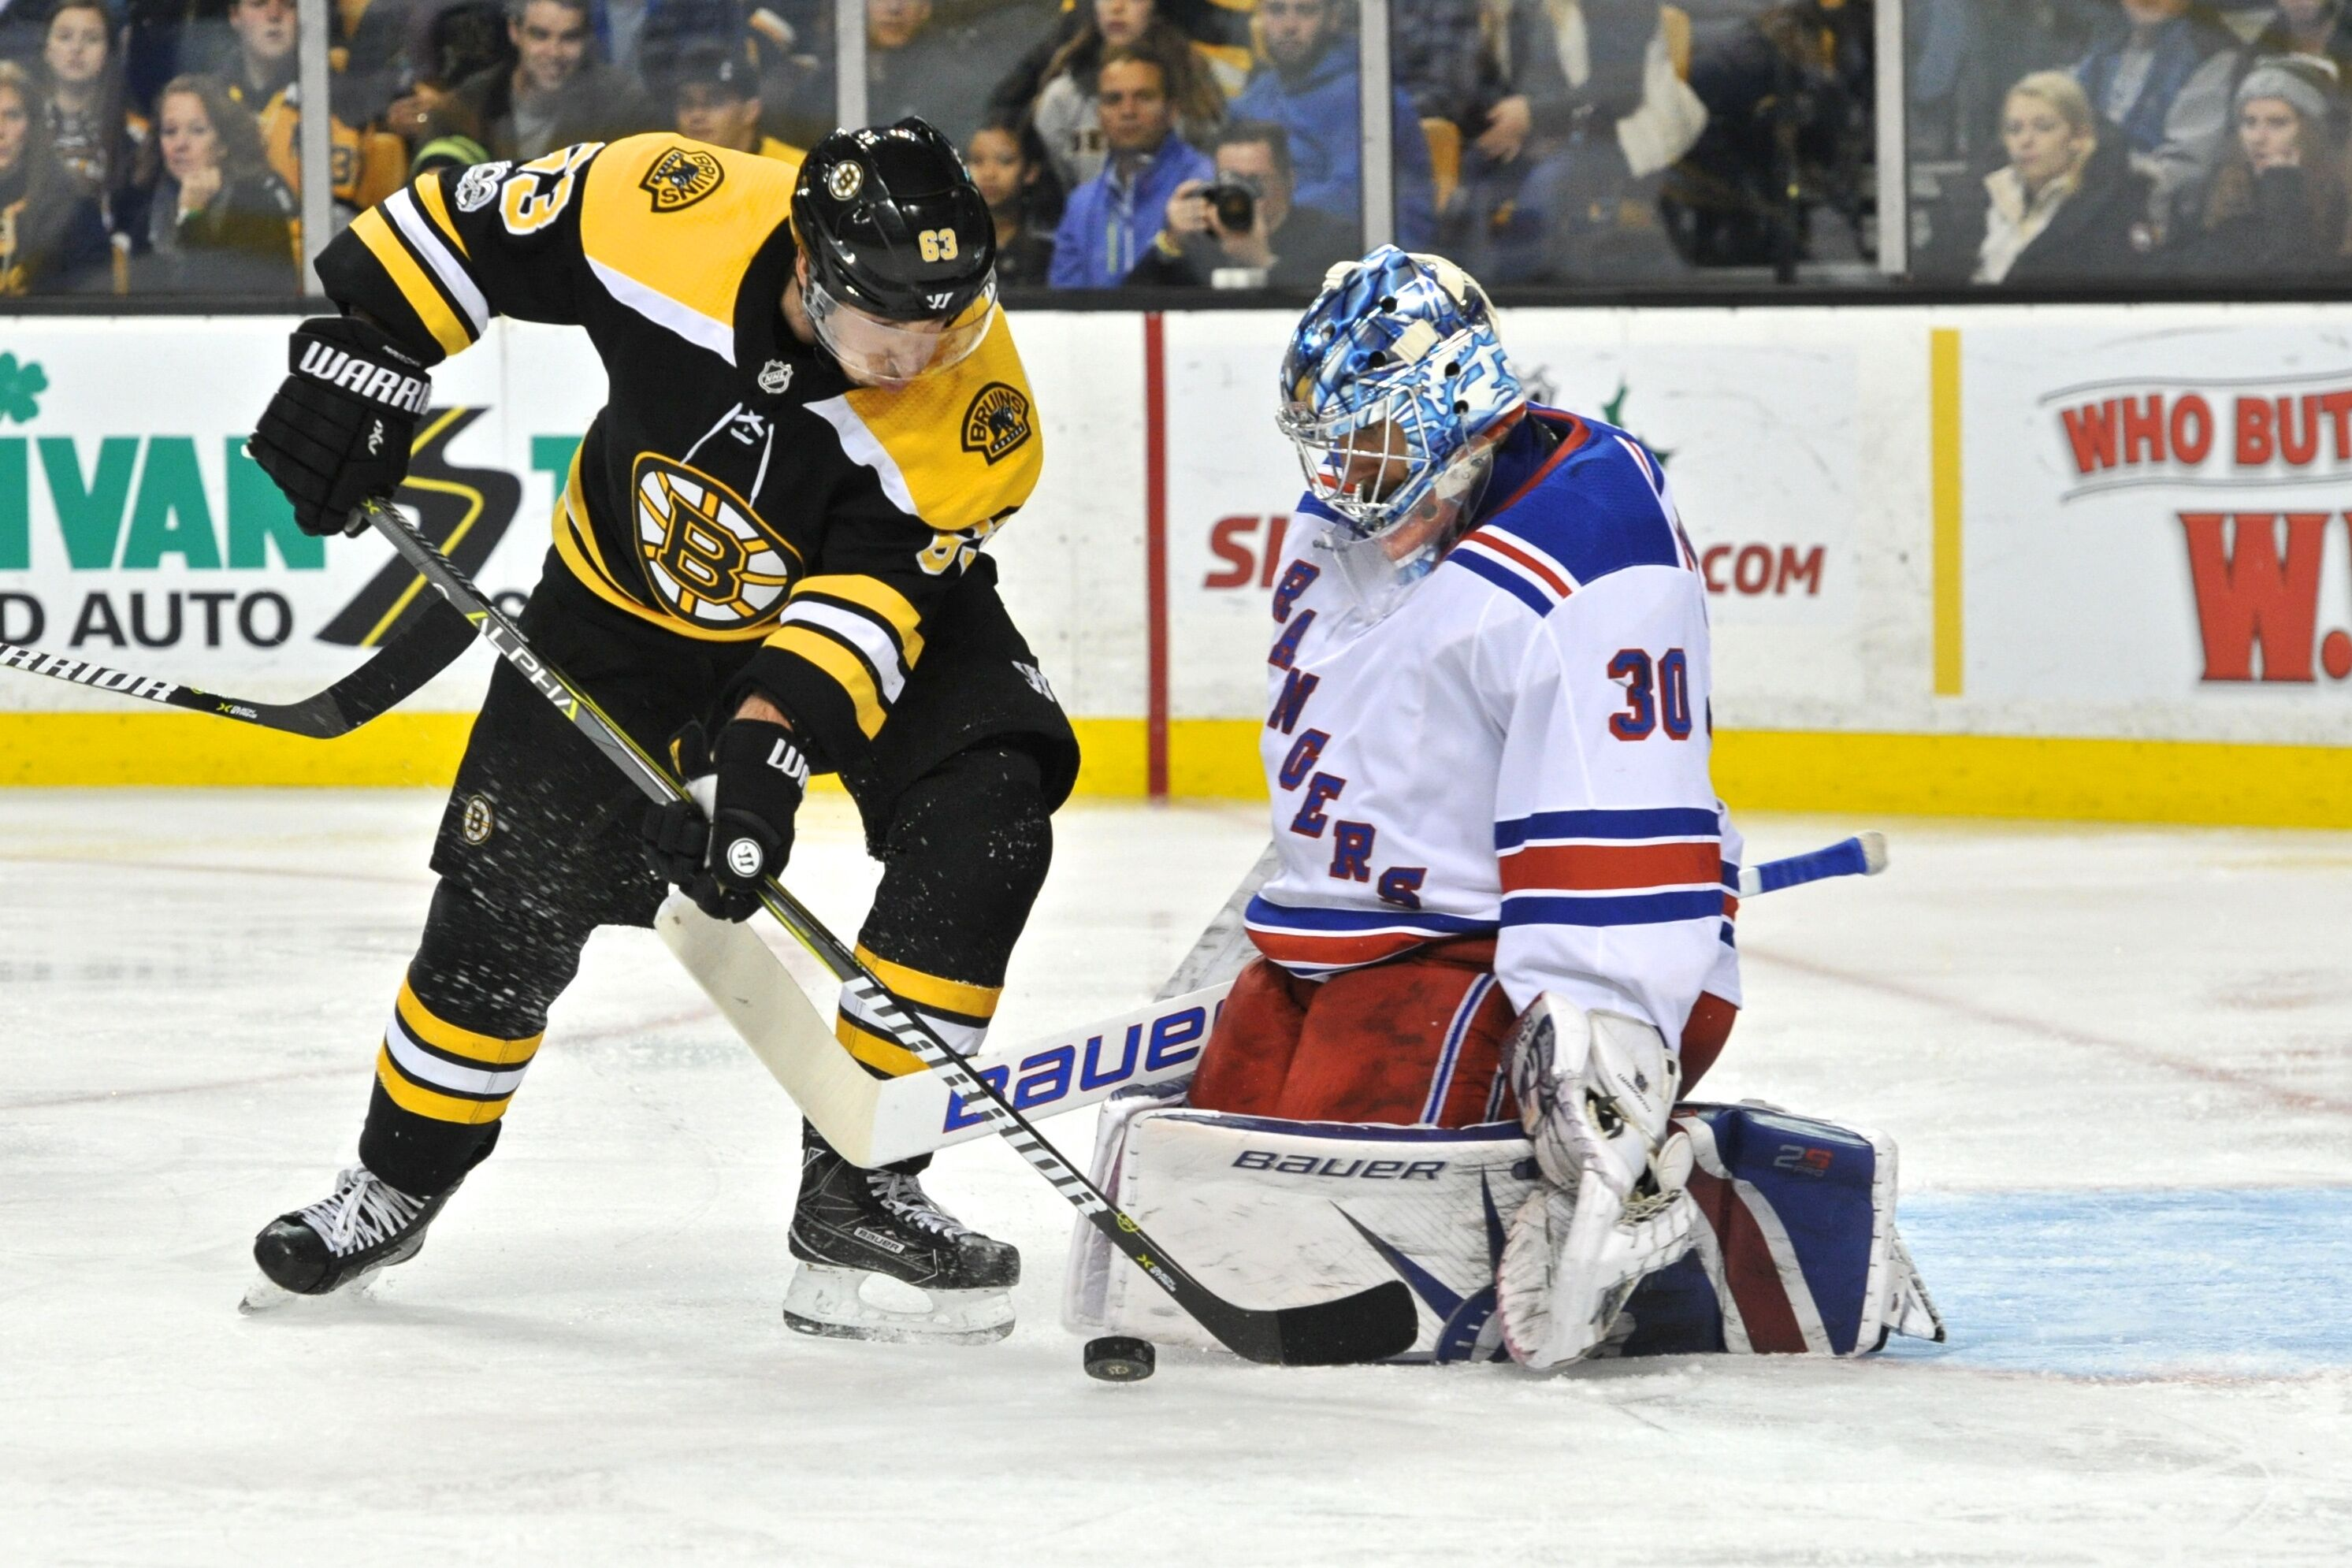 Boston Bruins: Boston Bruins In A New York (Rangers) State Of Mind Tonight